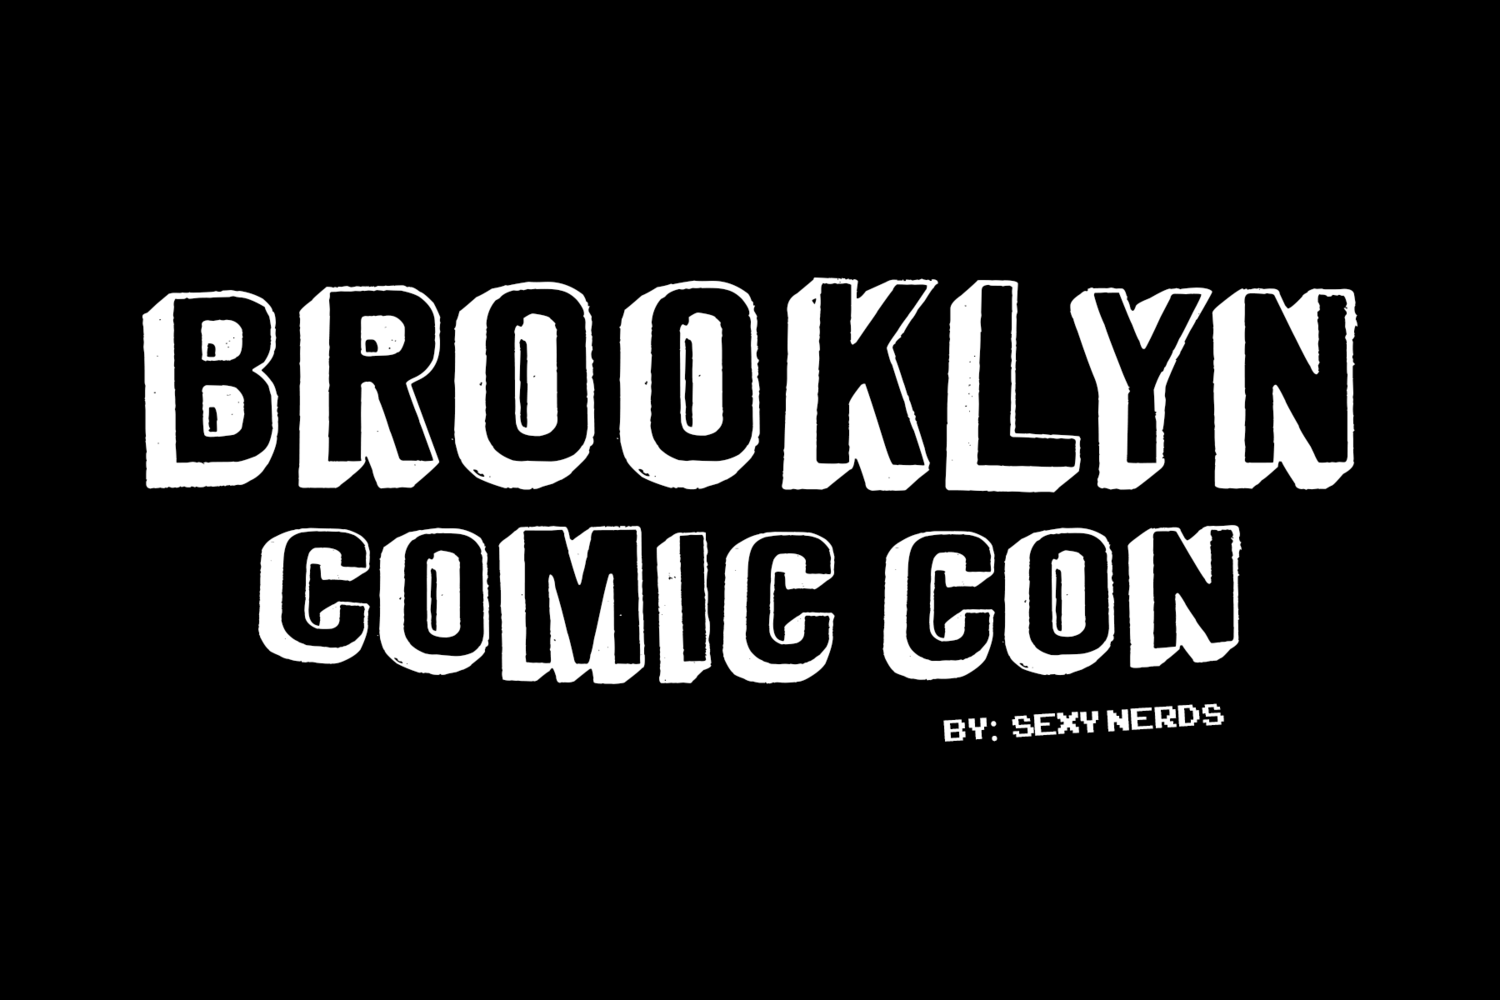 Brooklyn Comic Con